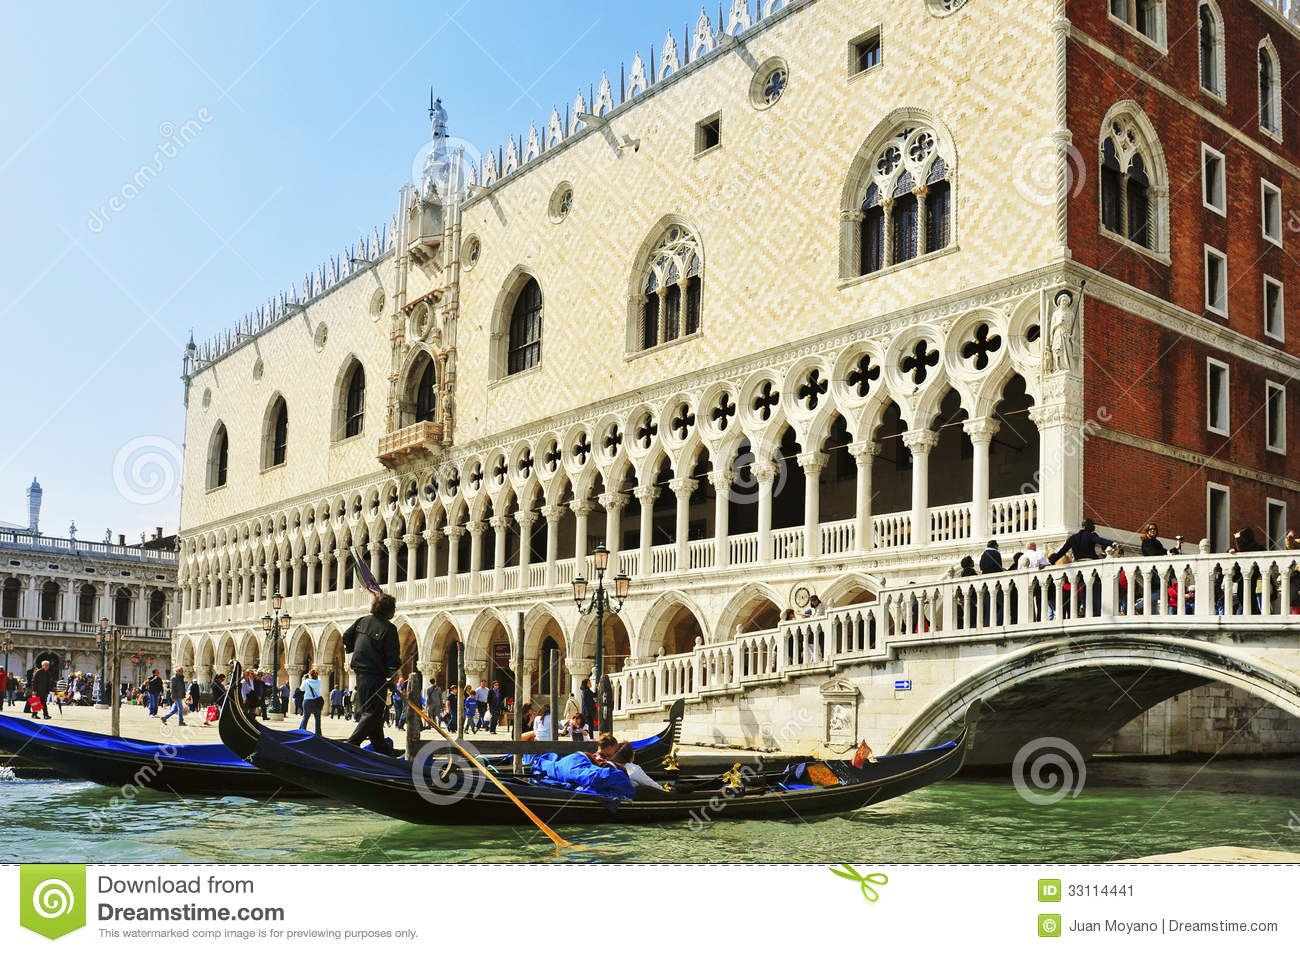 Palazzo Ducale in Venice, Italy